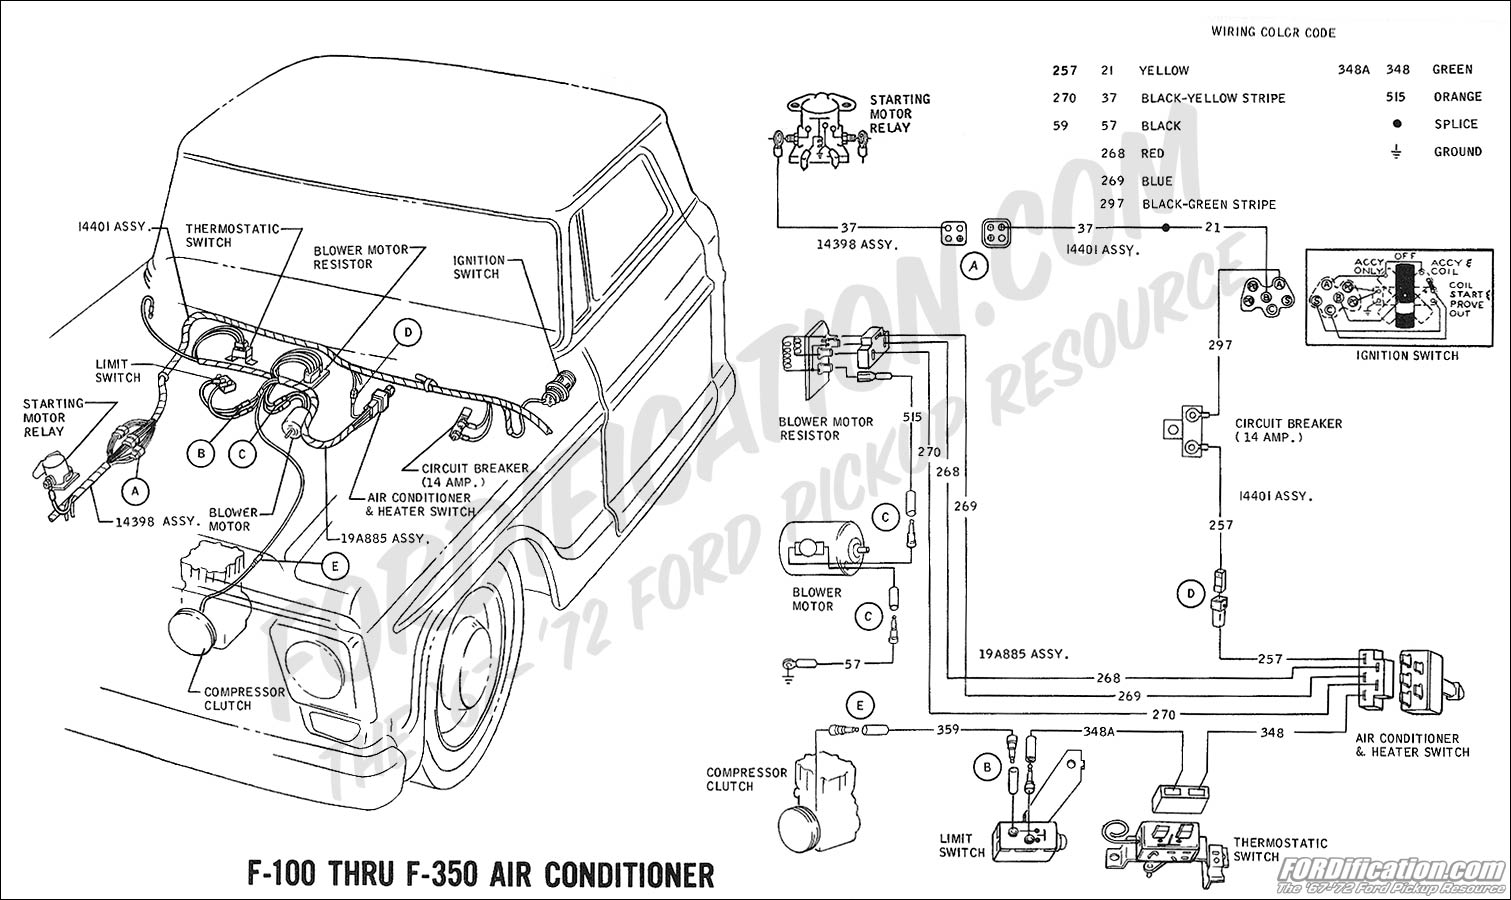 Change Door Lock besides Ford F250 Wiring Diagram Online further 1964 Mustang Wiring Diagrams besides 2003 Dodge Ram 2500 Radio Wiring Diagram furthermore Index. on volvo brake light switch